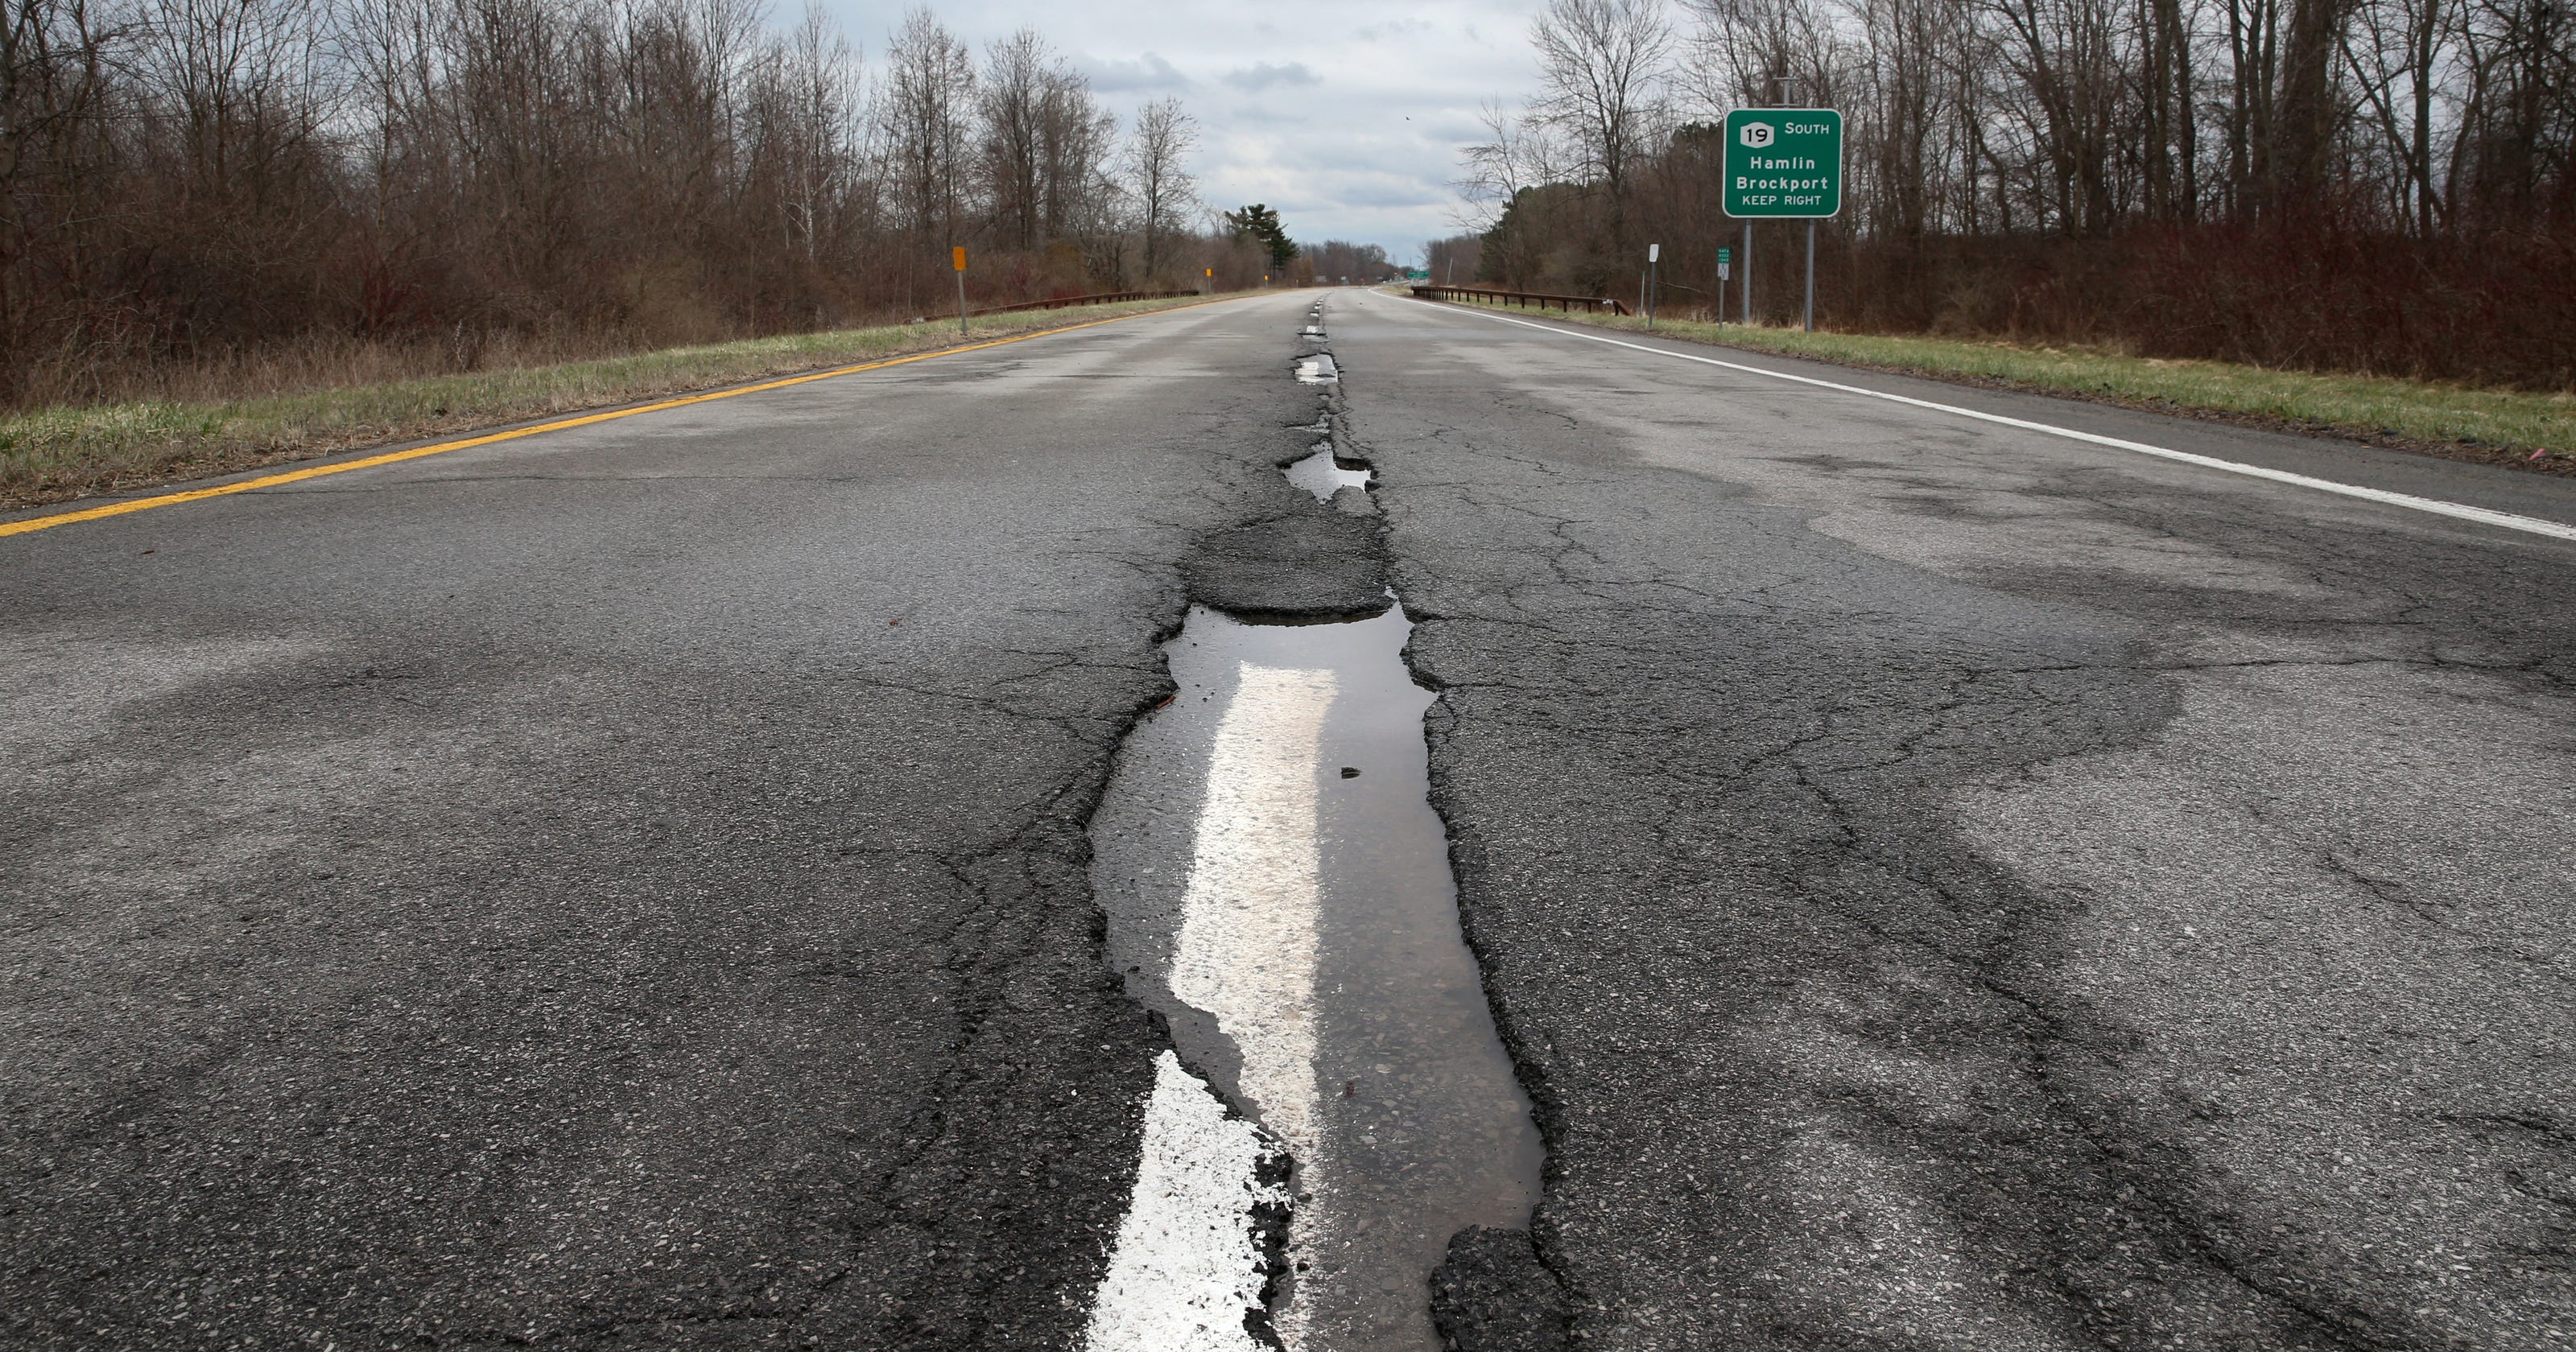 Will limited resources decommission some roads, bridges?